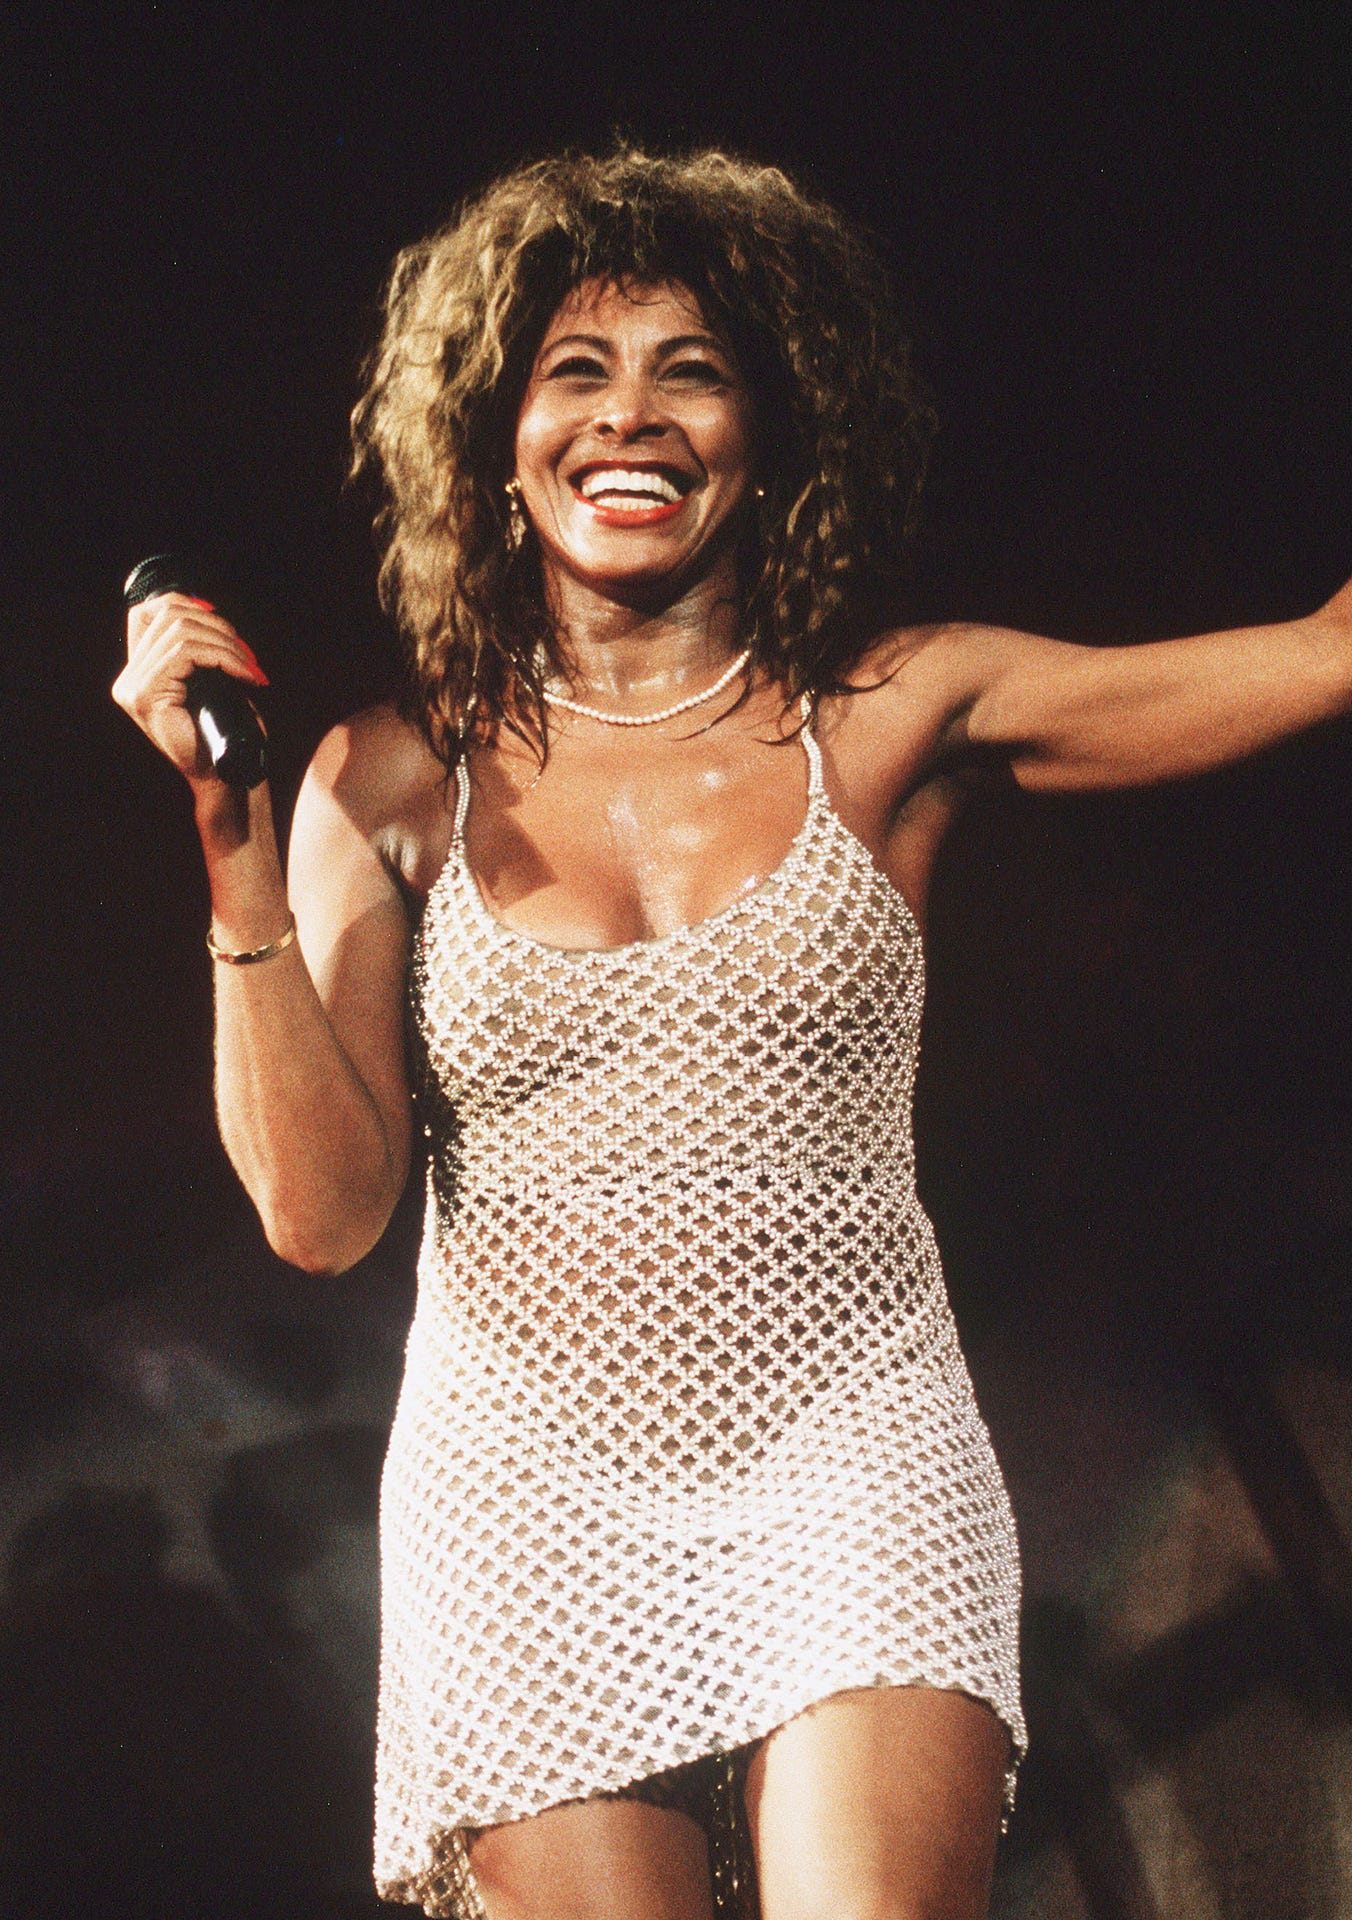 Rock & Roll Hall of Fame announces class of 2021: Tina Turner, Carole King, The Go-Go s, JAY-Z, Foo Fighters, Todd Rundgren